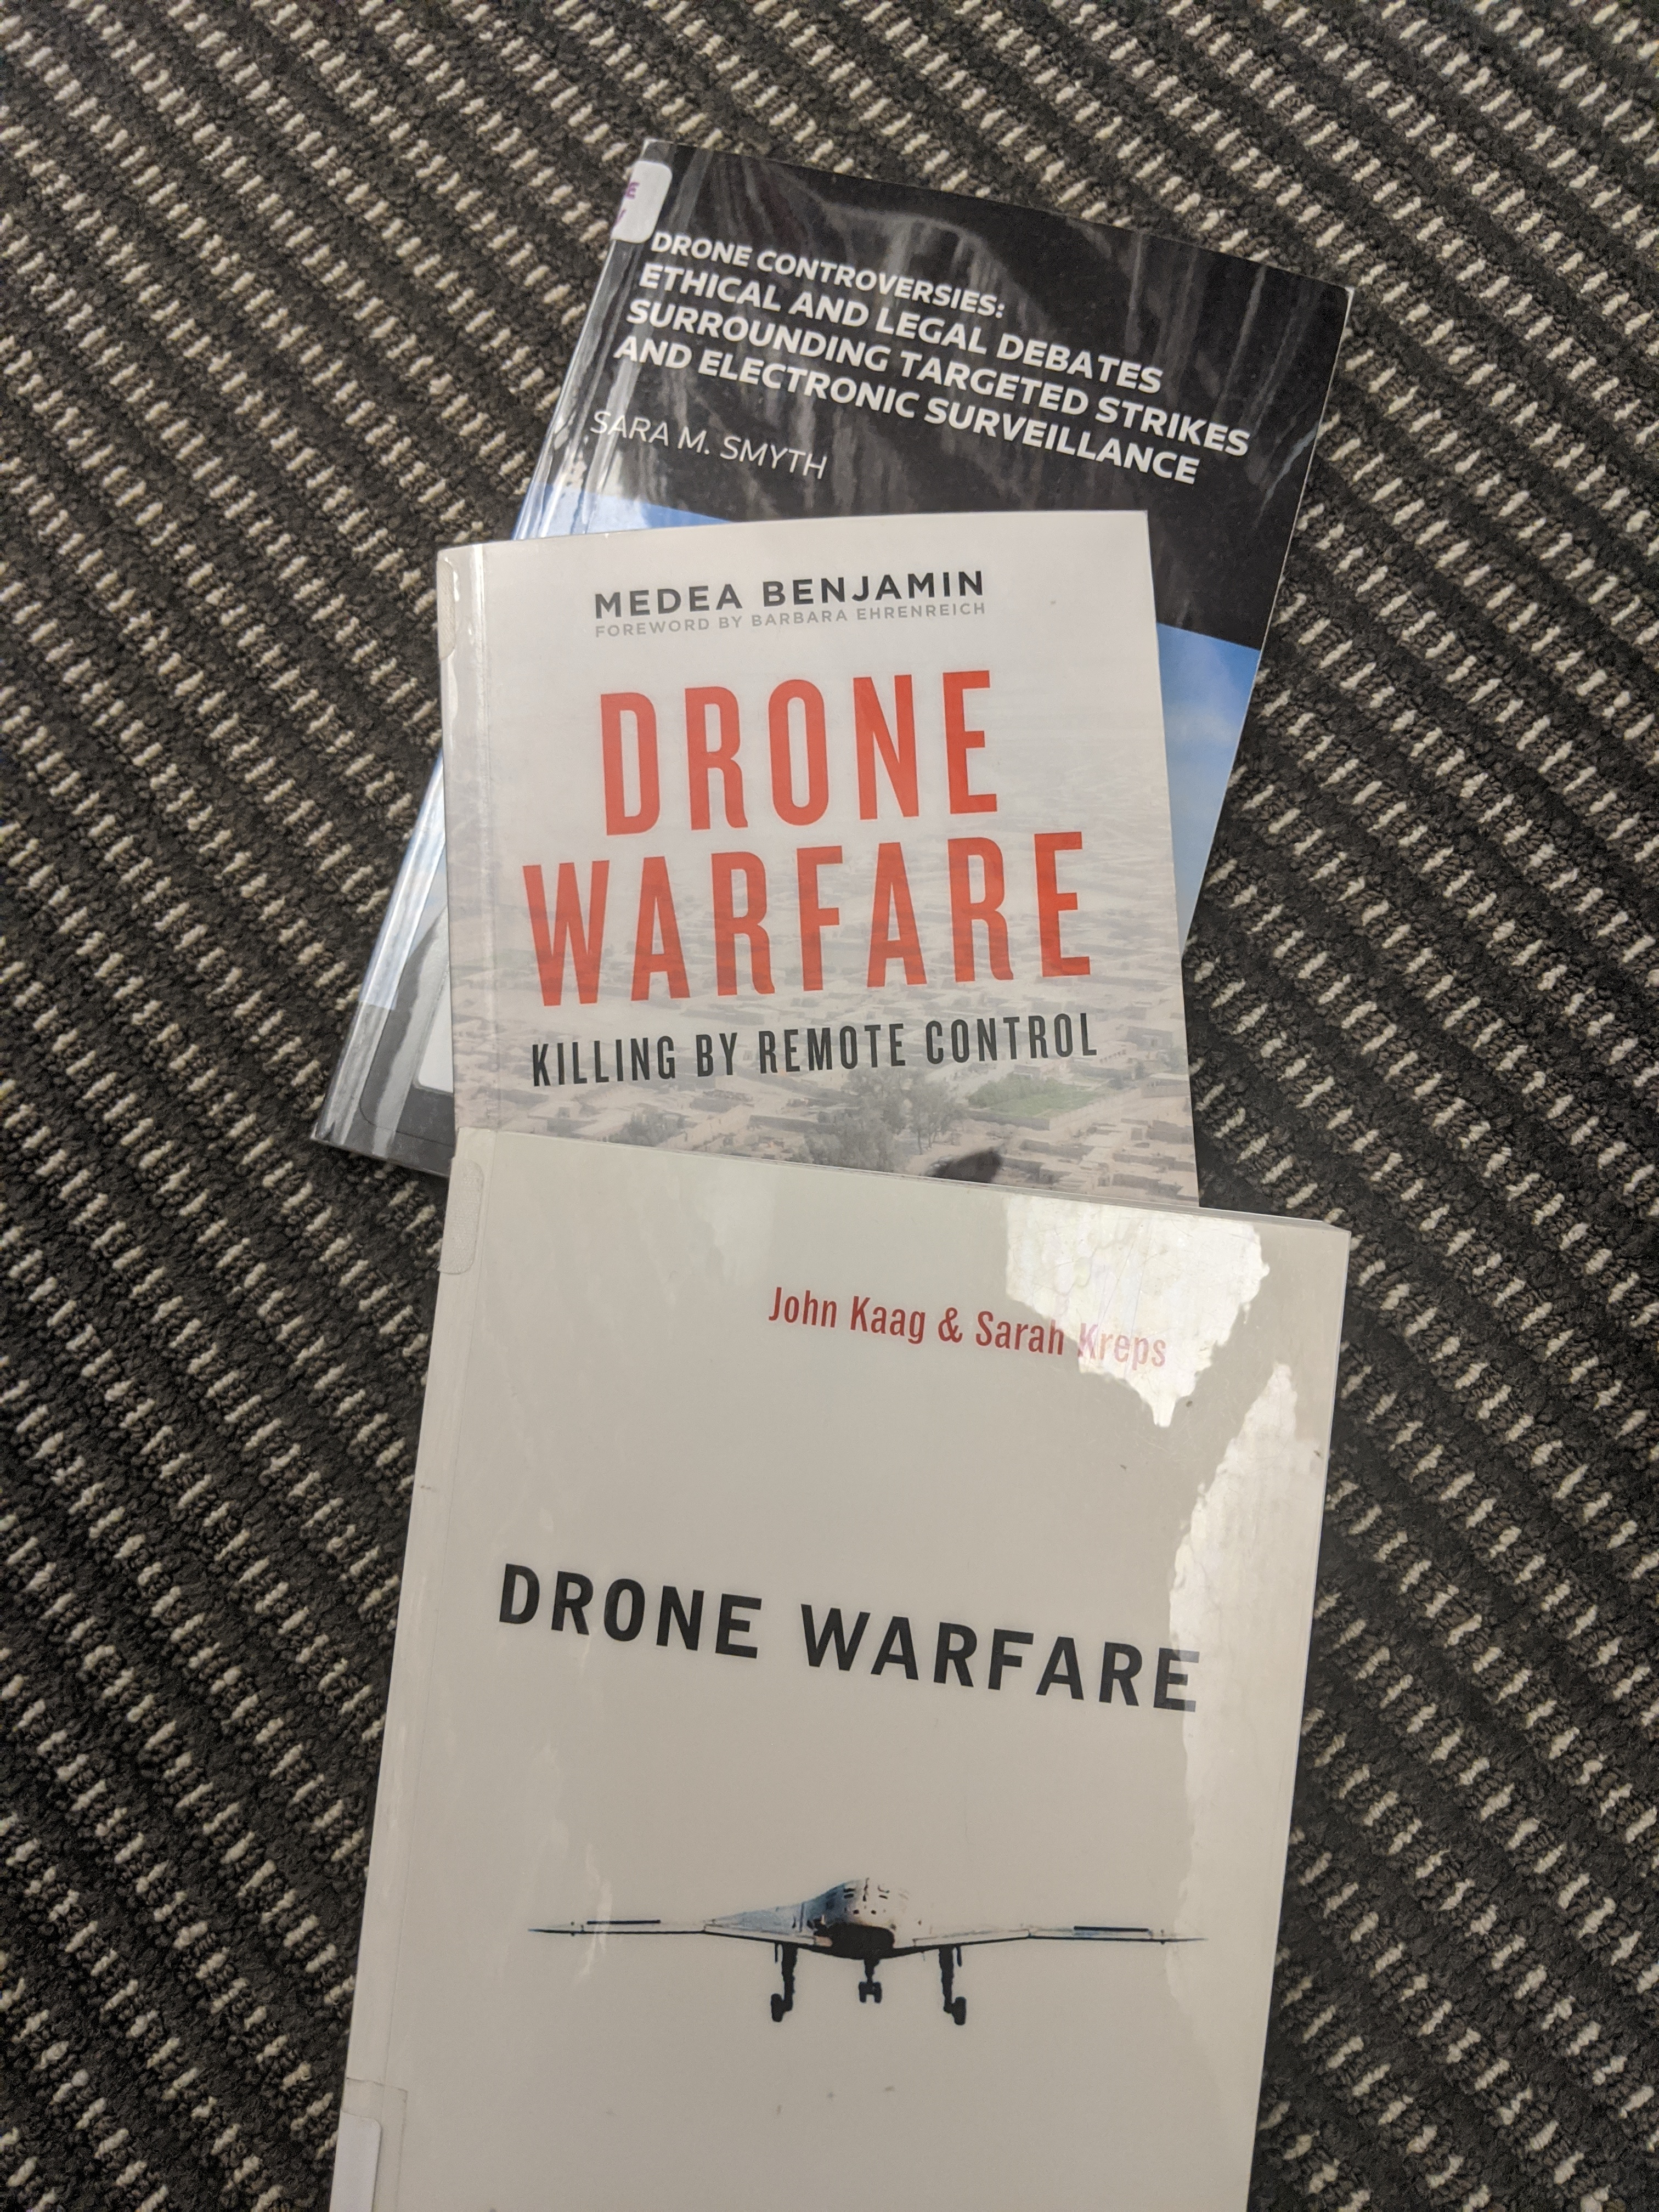 Three books. Titles: Drone Controversies: Ethical and Legal Debates Surrounding Targeted Strikes and Electronic Surveilance, Drone Warfare: Killing by Remote Control, Drone Warfare